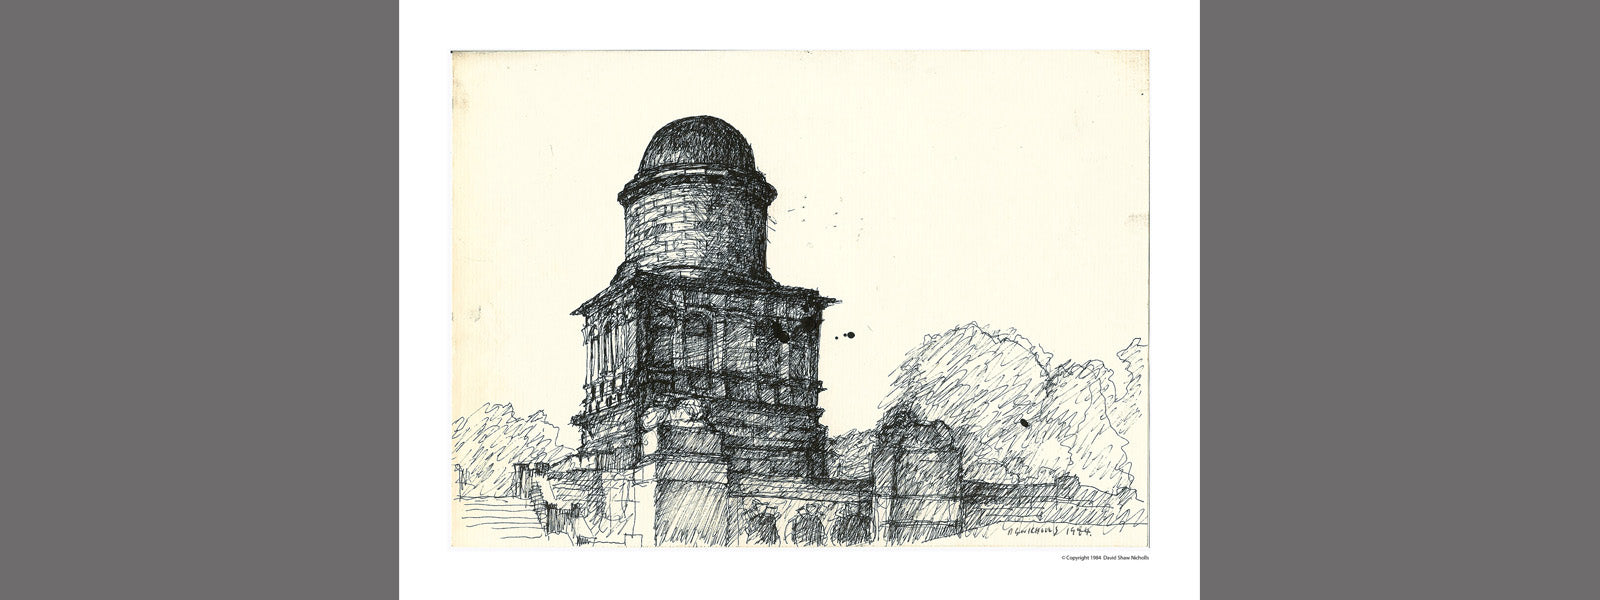 HAMILTON MAUSOLEUM, Printworks: Limited Edition of 20